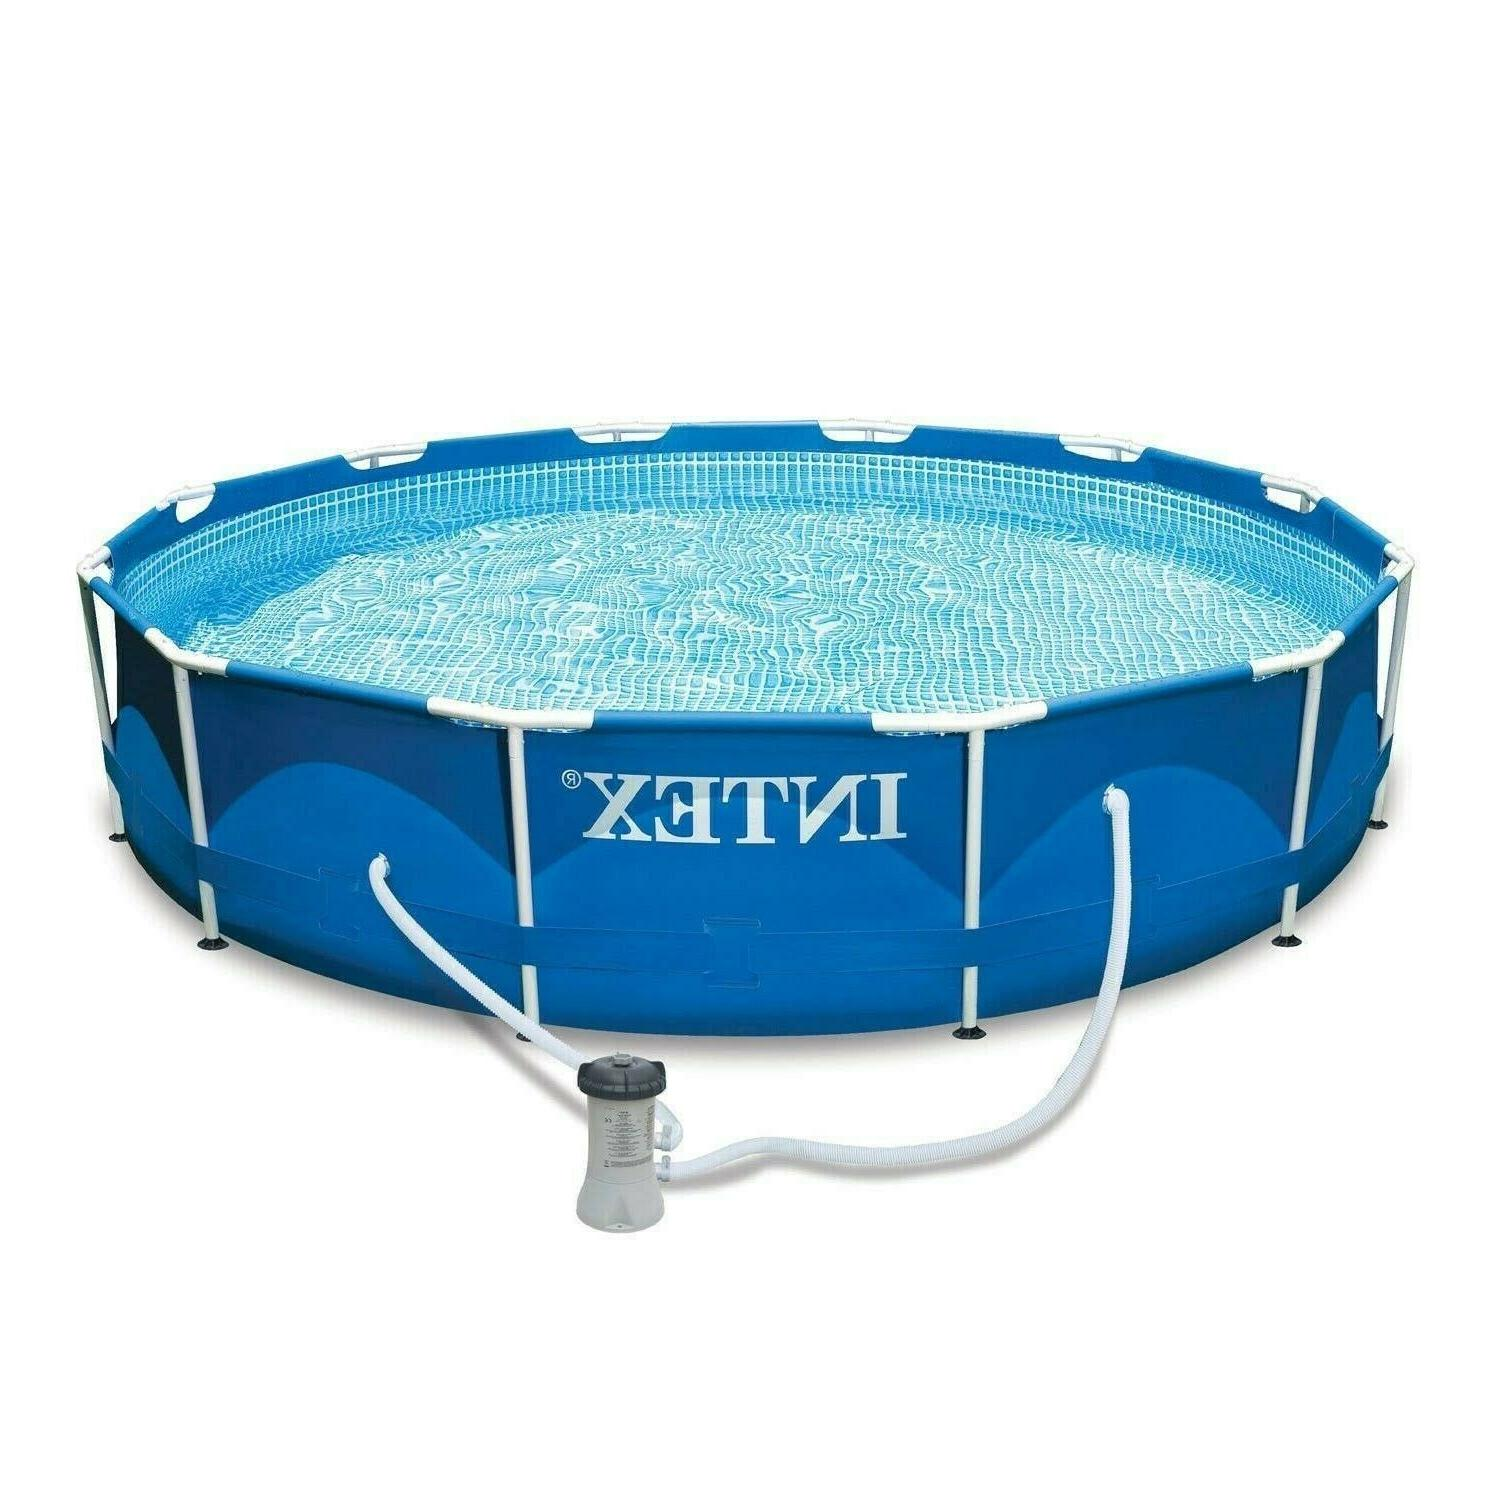 Intex 12ft x 33in Above Ground Pool Steel Frame Swim Summer